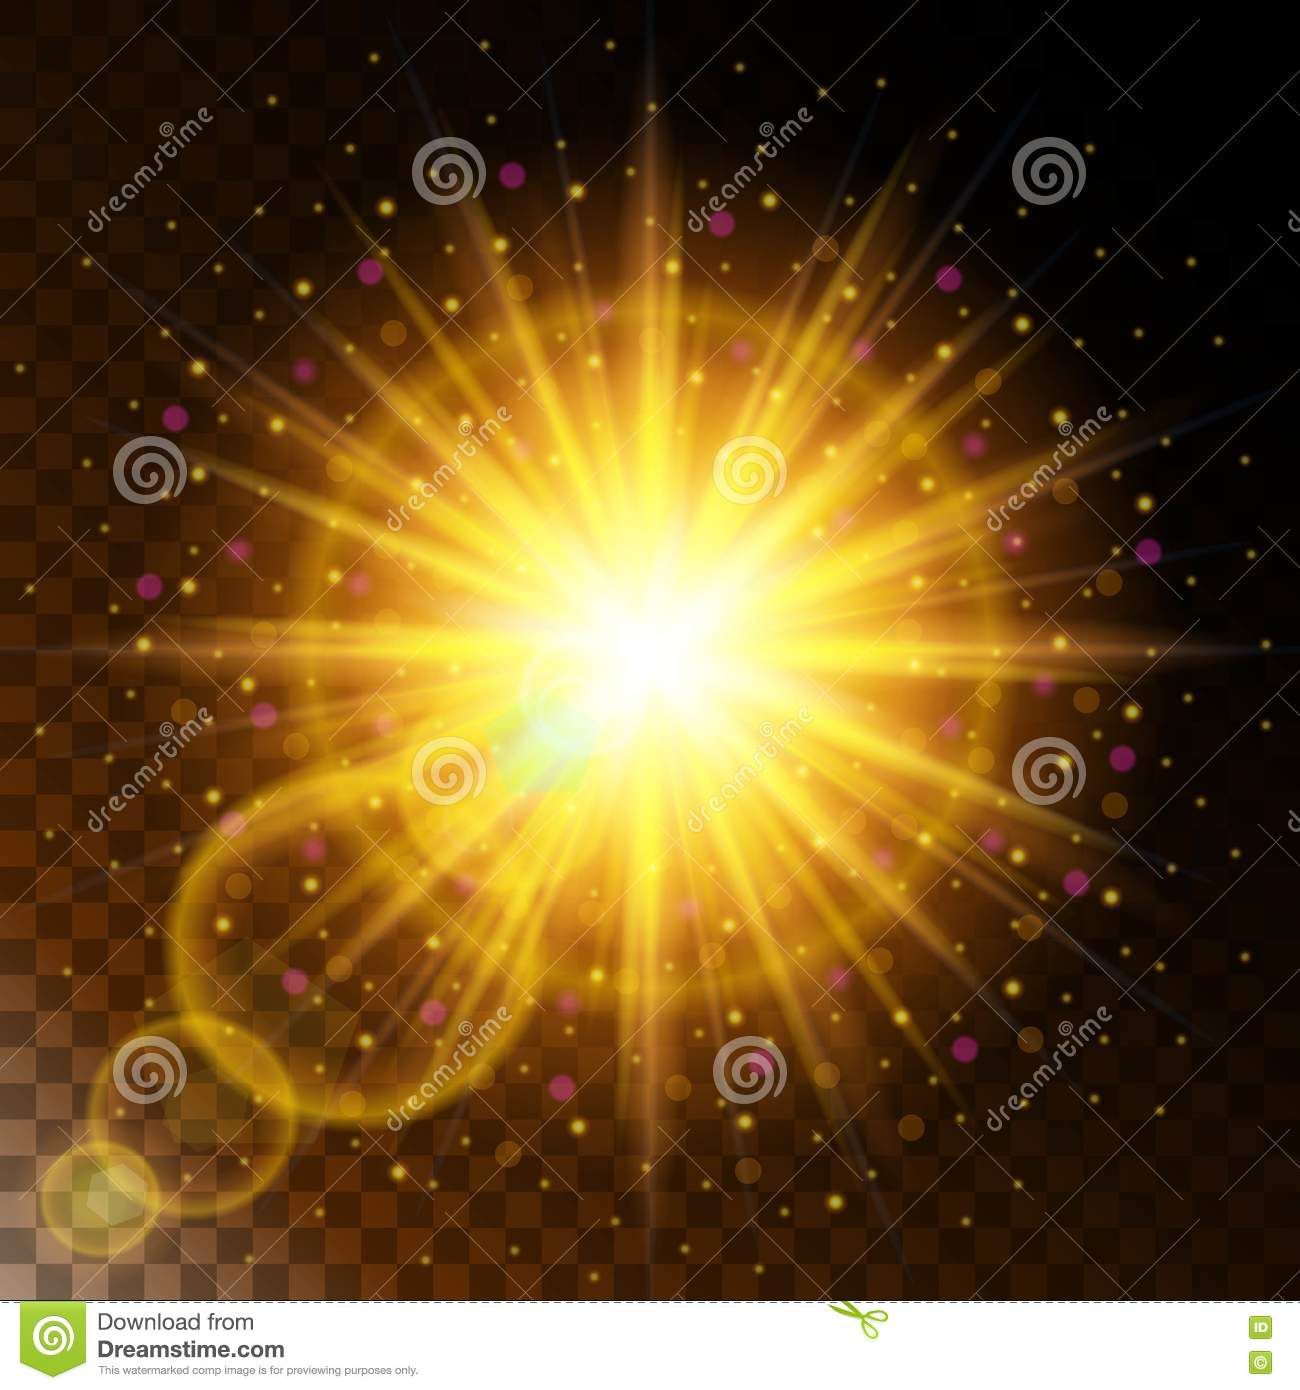 Set Of Glowing Light Effect Star, The Sunlight Warm Yellow Glow ... for Sun Light Effect Background  55jwn